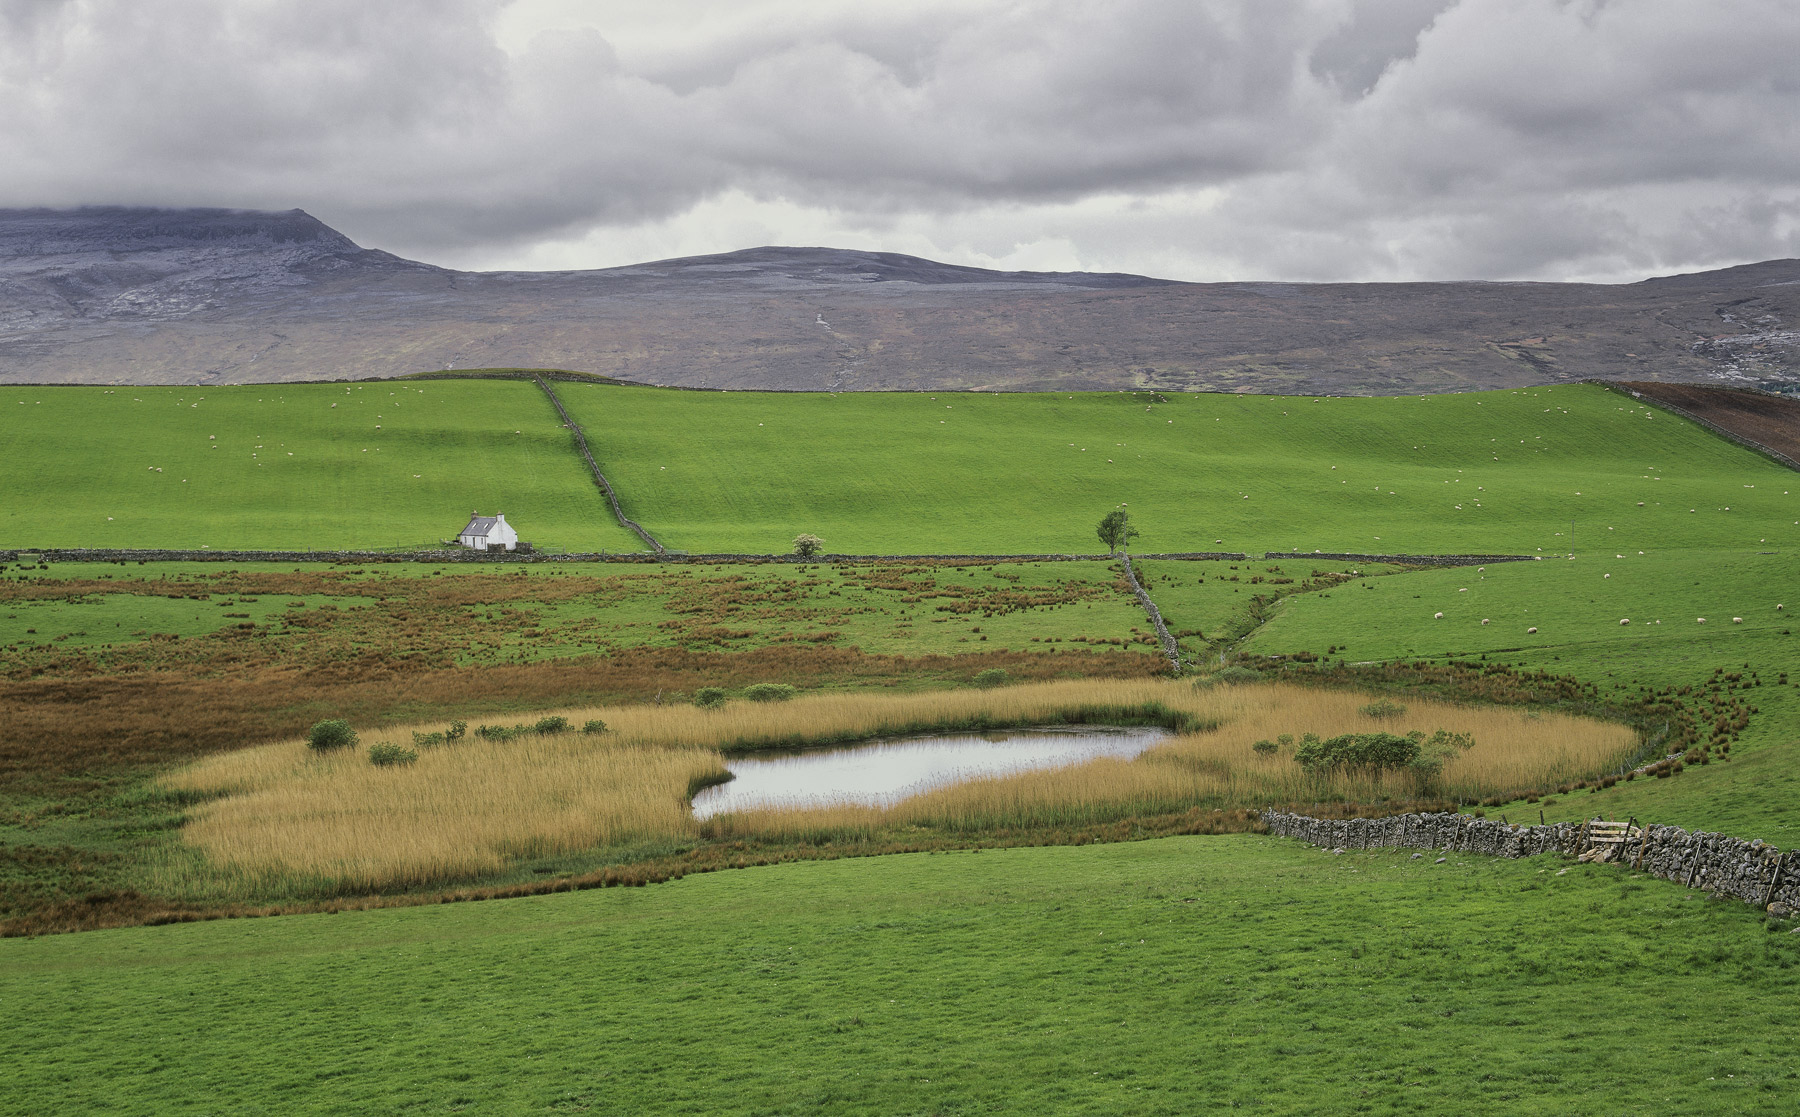 Sink Hole, Loch Eribol, Sutherland, Scotland, plug, hole, reeds, sheep, white, cottage, linear, graphic, green, grass, photo